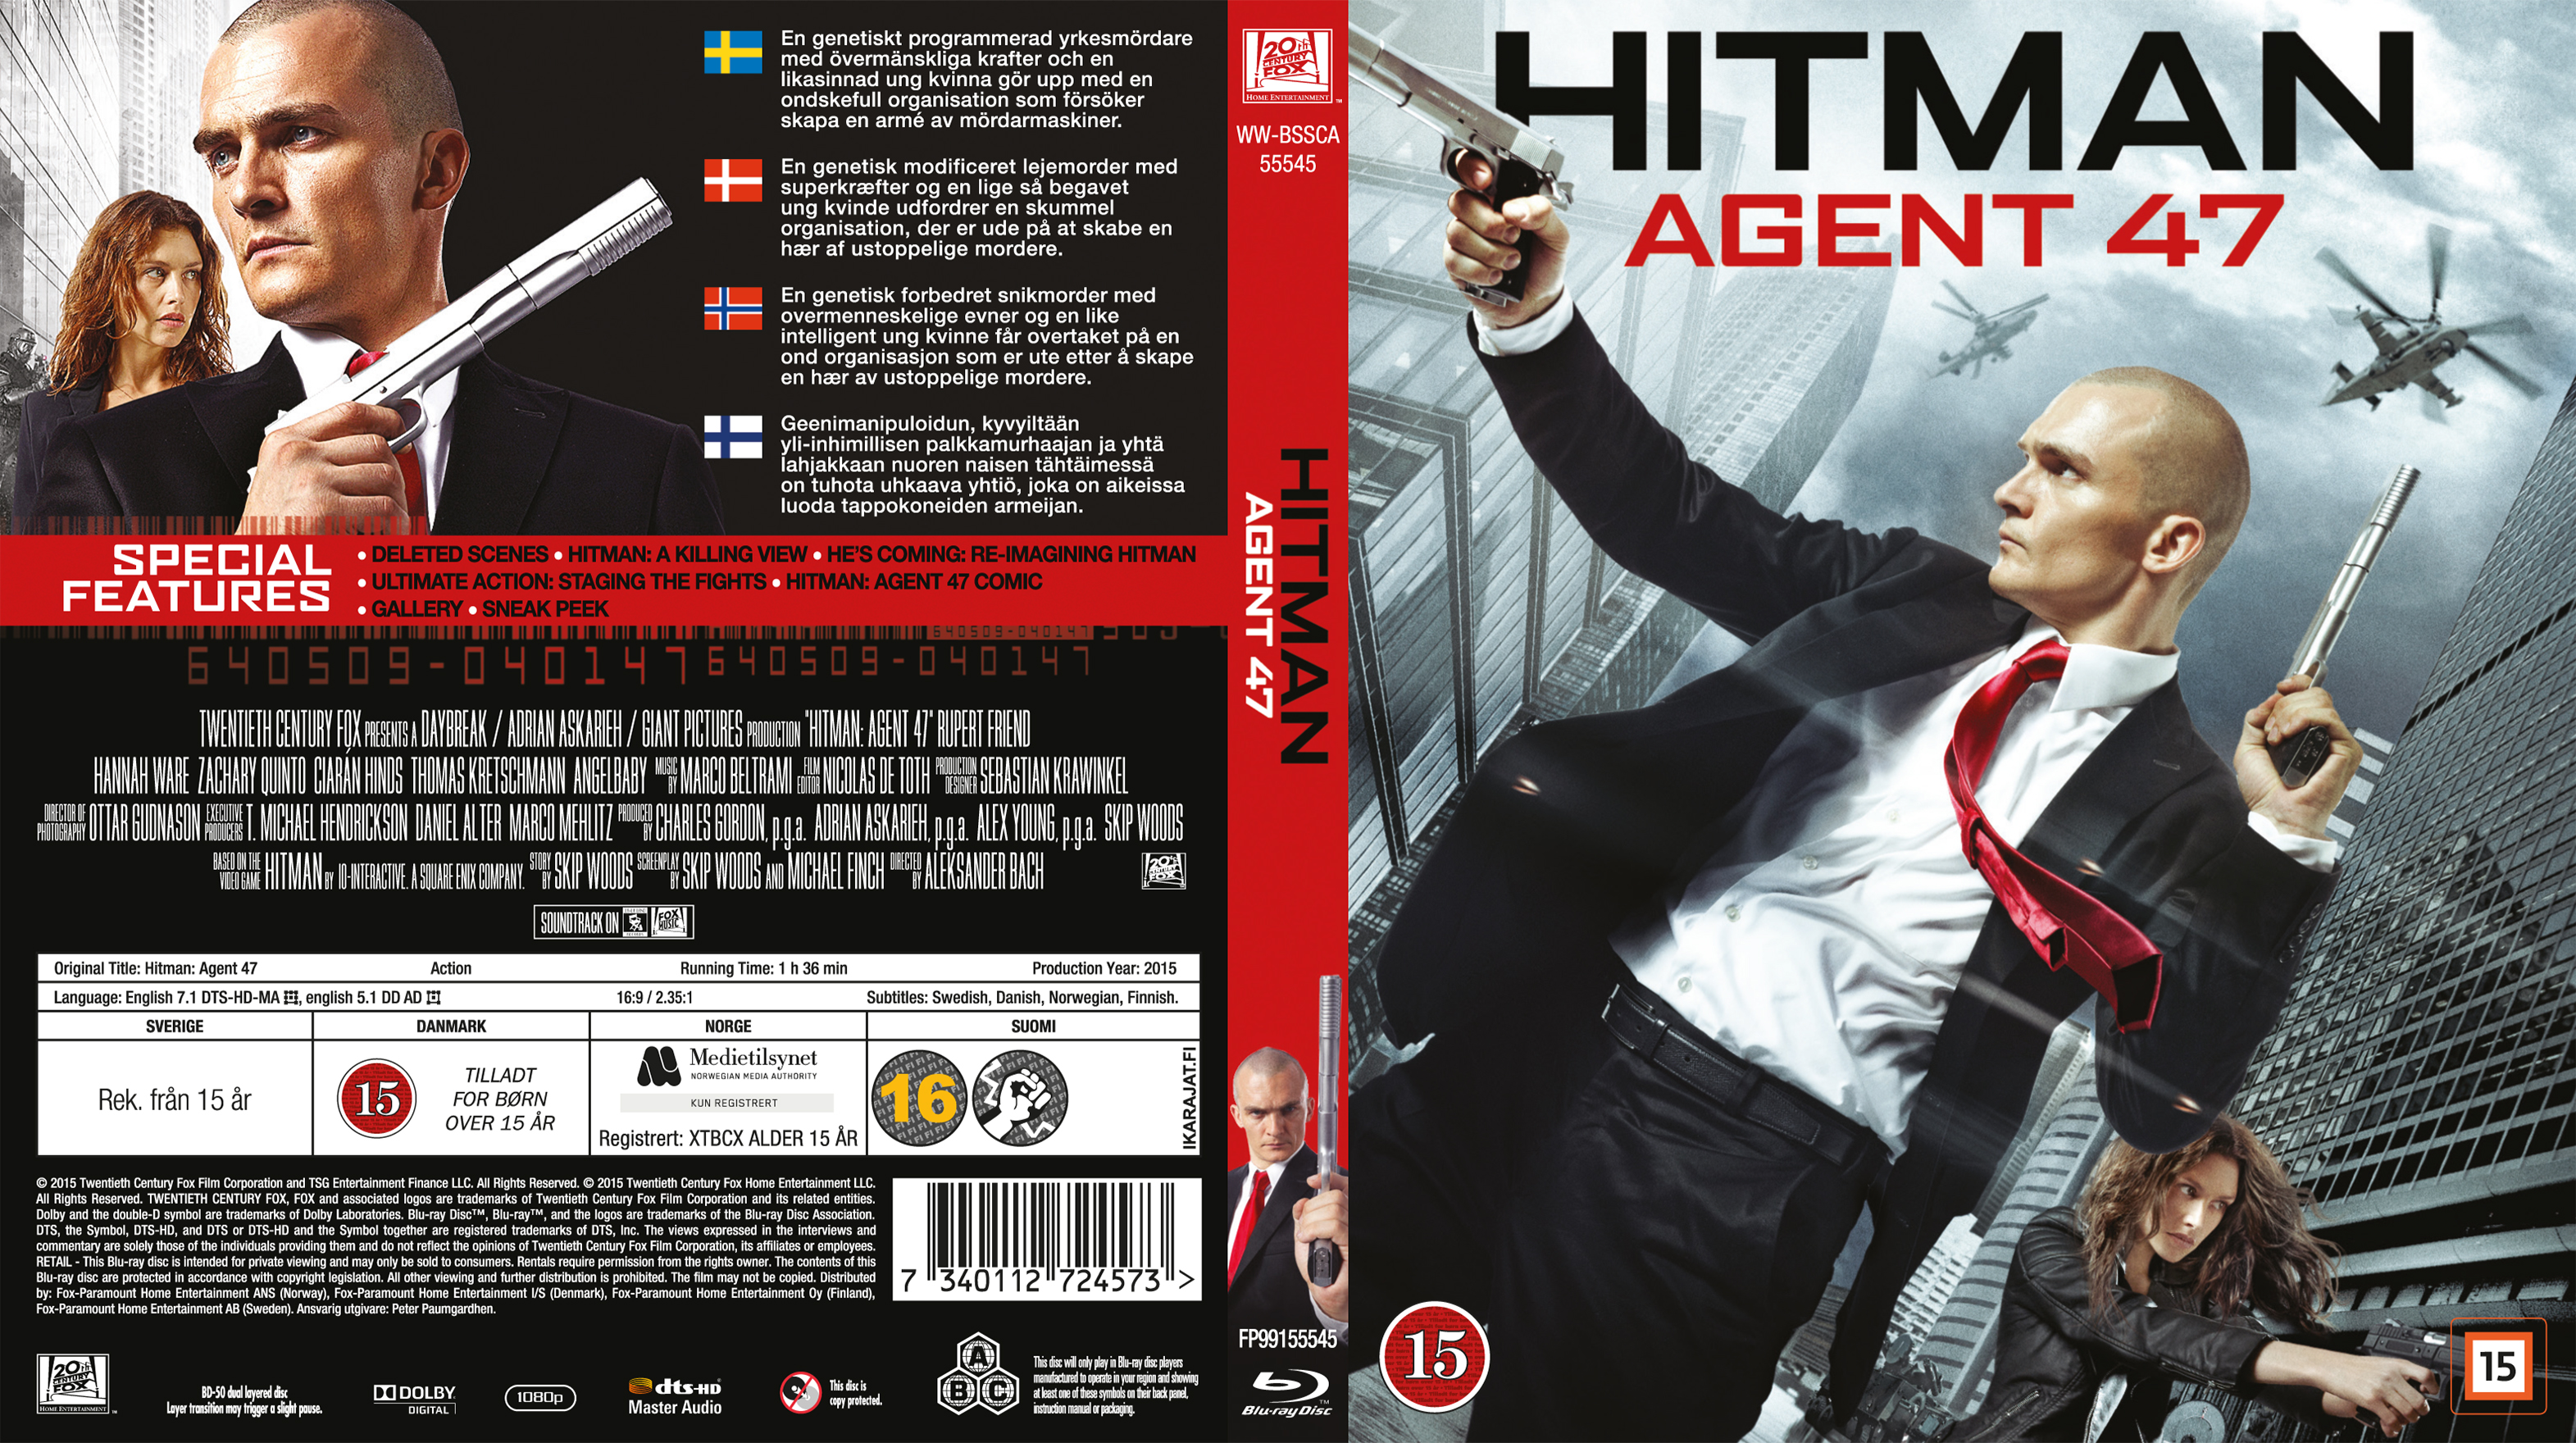 Covers Box Sk Hitman Agent 47 2015 Blu Ray Nordic